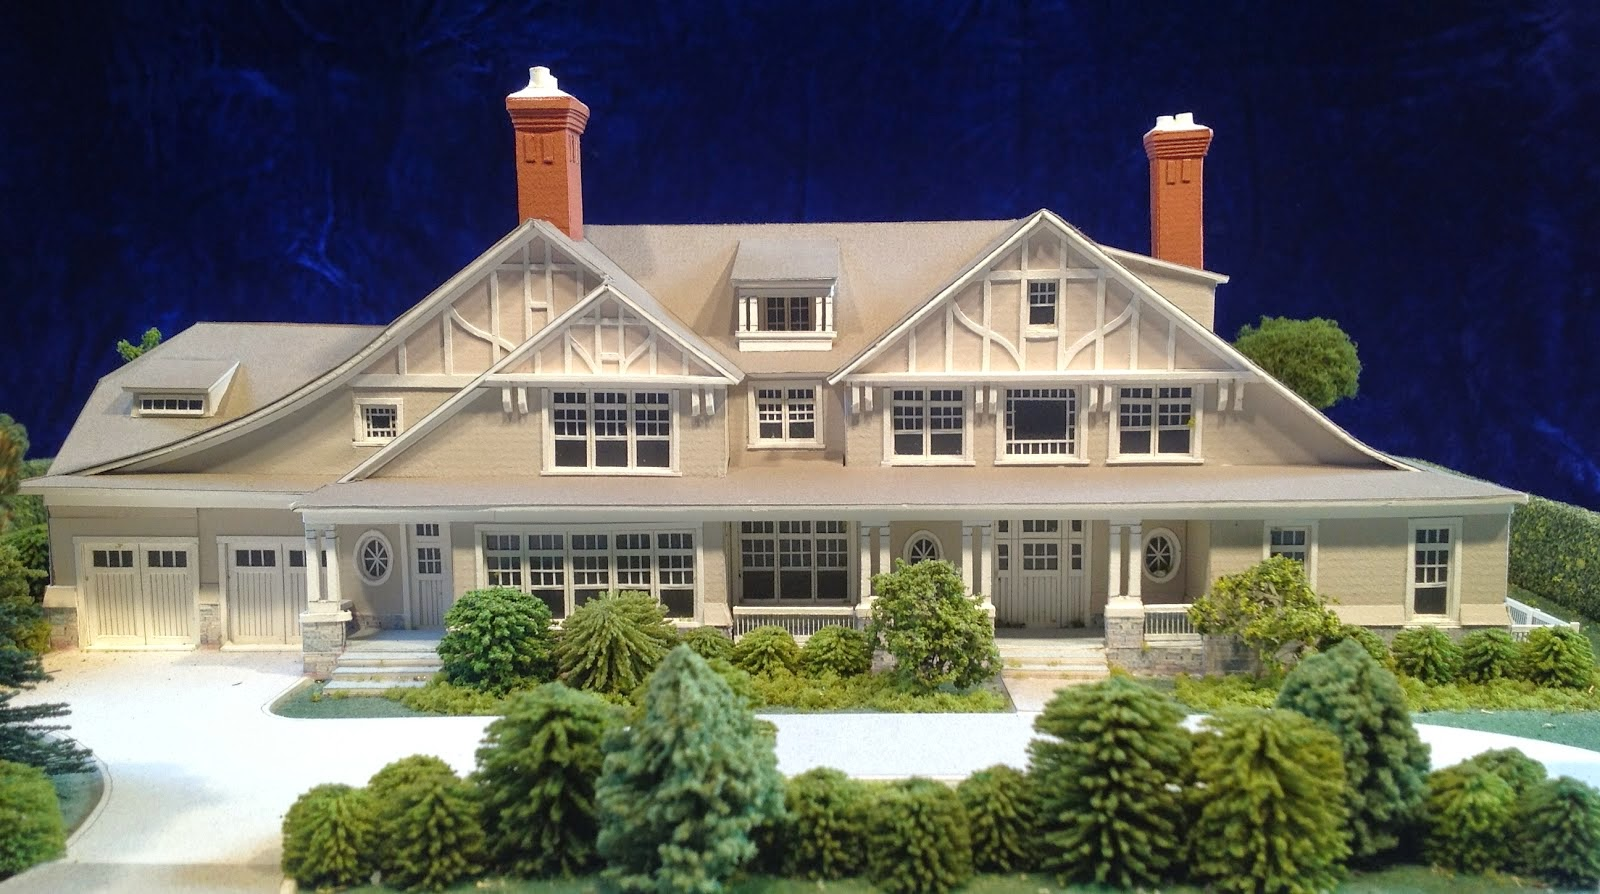 Gary lawrance architectural models of hamptons houses for Houses models